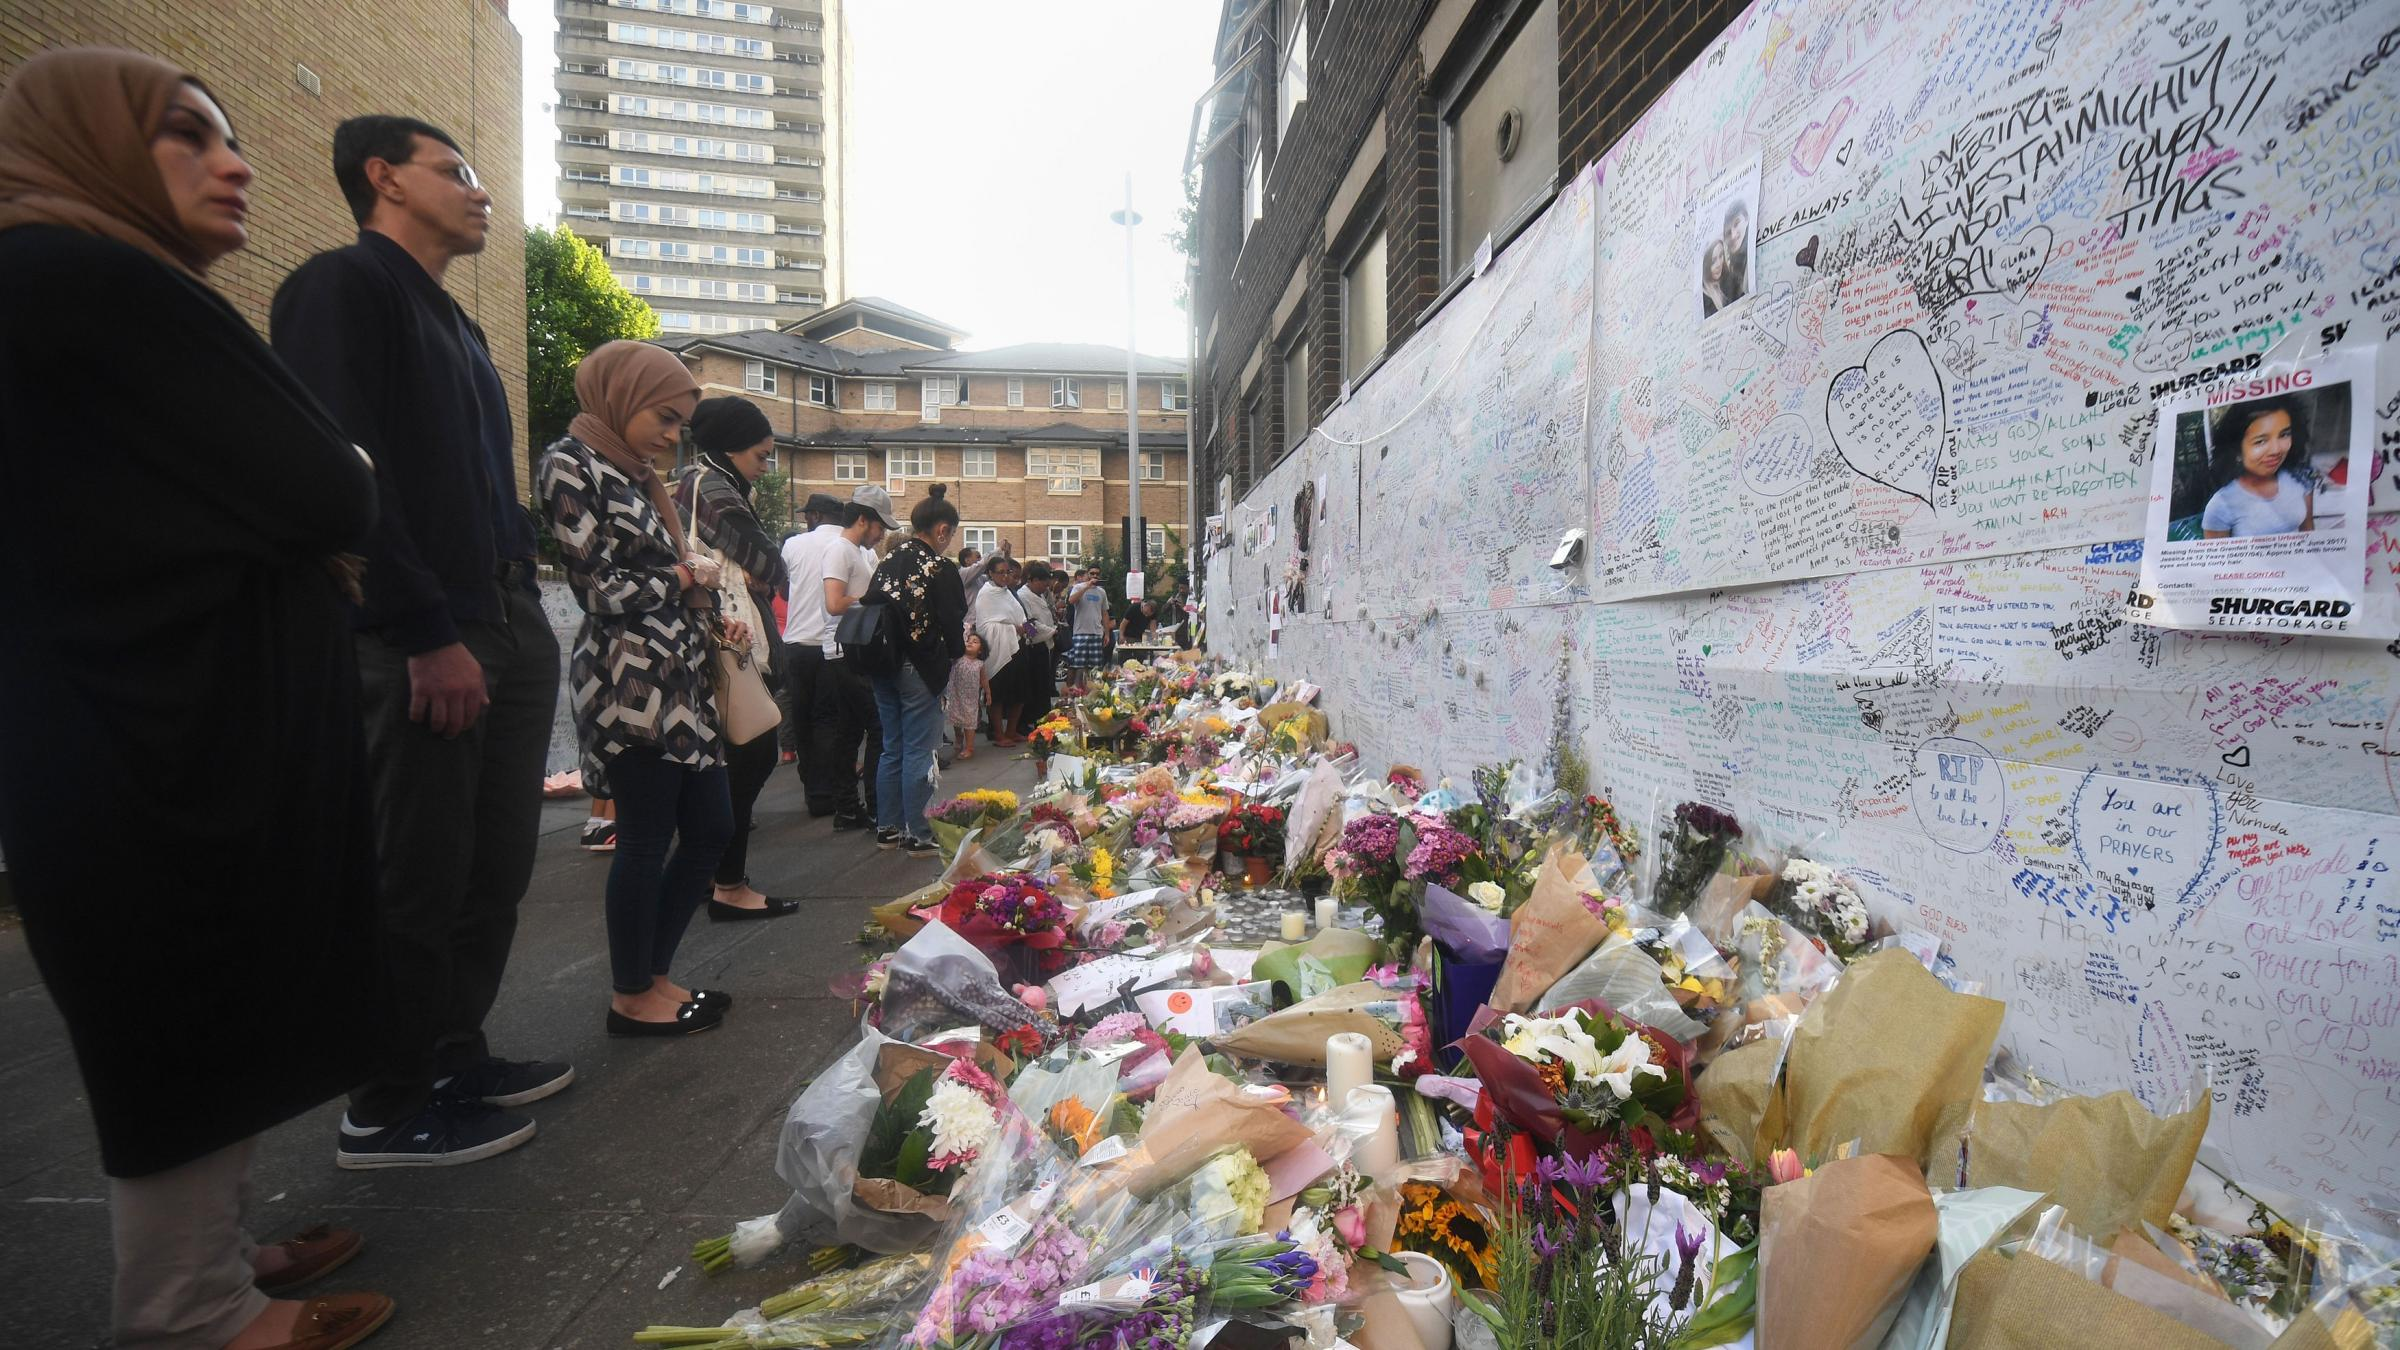 London fire: The victims of the Grenfell Tower tragedy